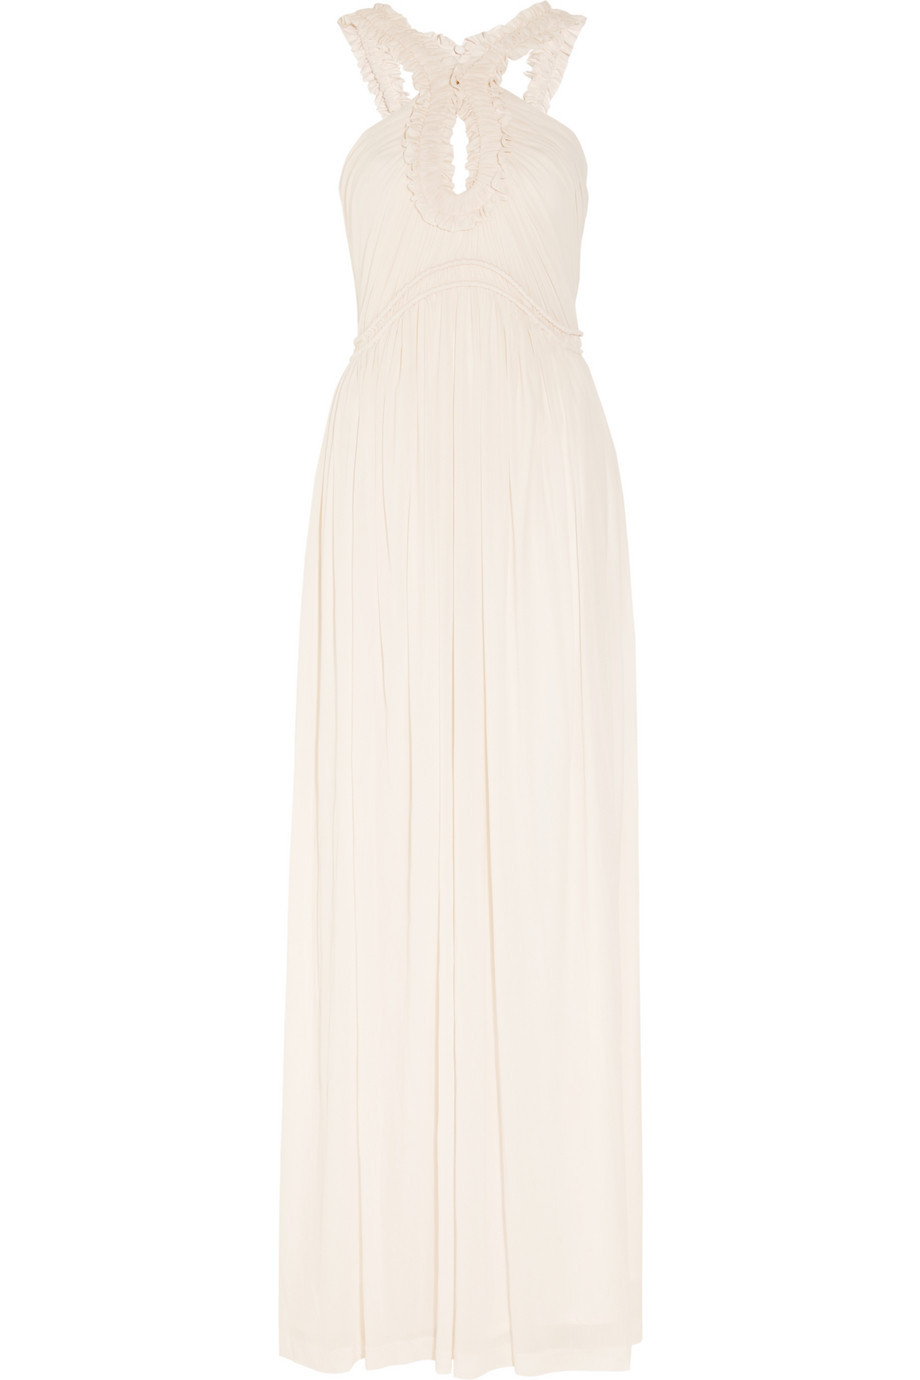 Creamy-blossom-wedding-dress-by-alexander-mcqueen.full